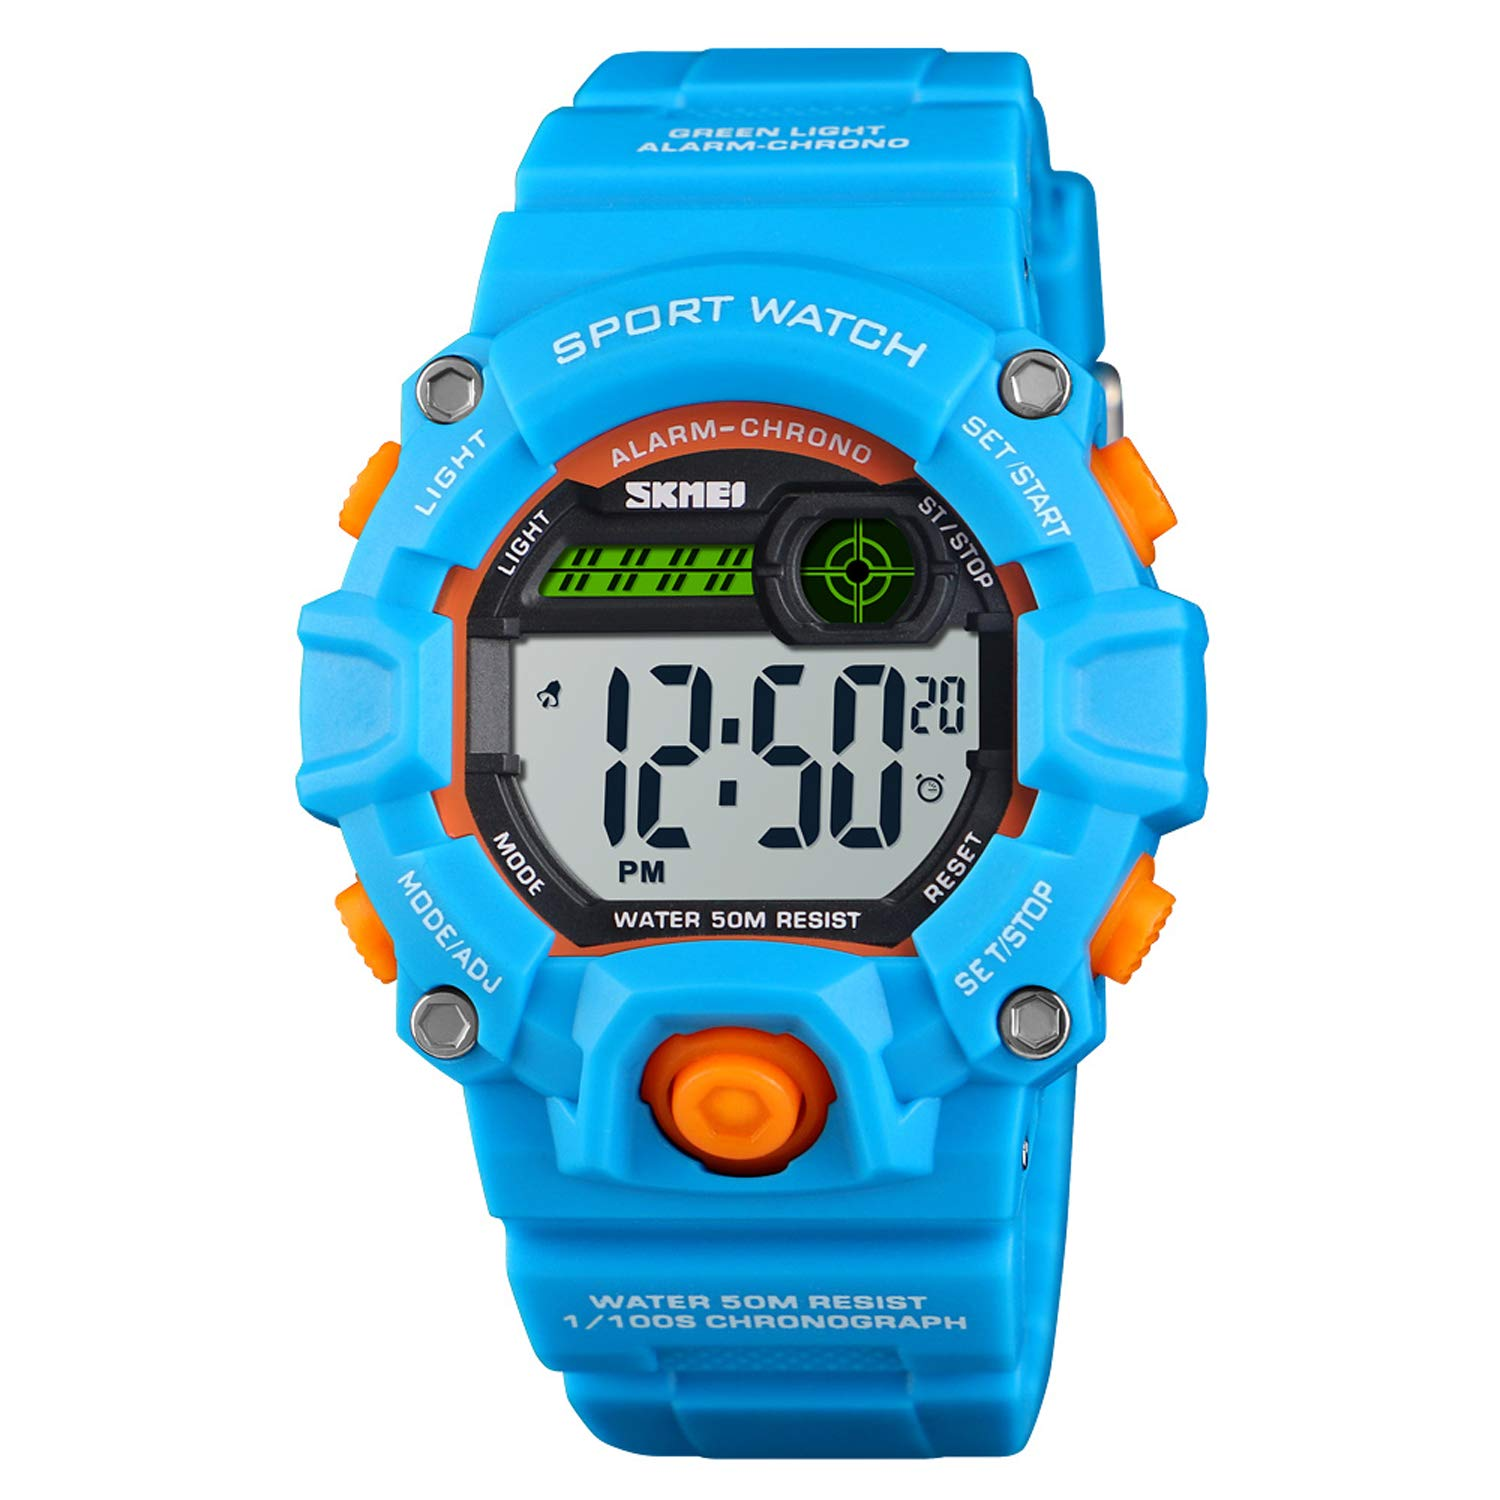 Boys and Girls LED Sport Digital Watch,Waterproof Electronic Casual Military Wrist Kids Sports Watch with Silicone Band Luminous Alarm Stopwatch Blue Unisex Children Watches by CakCity